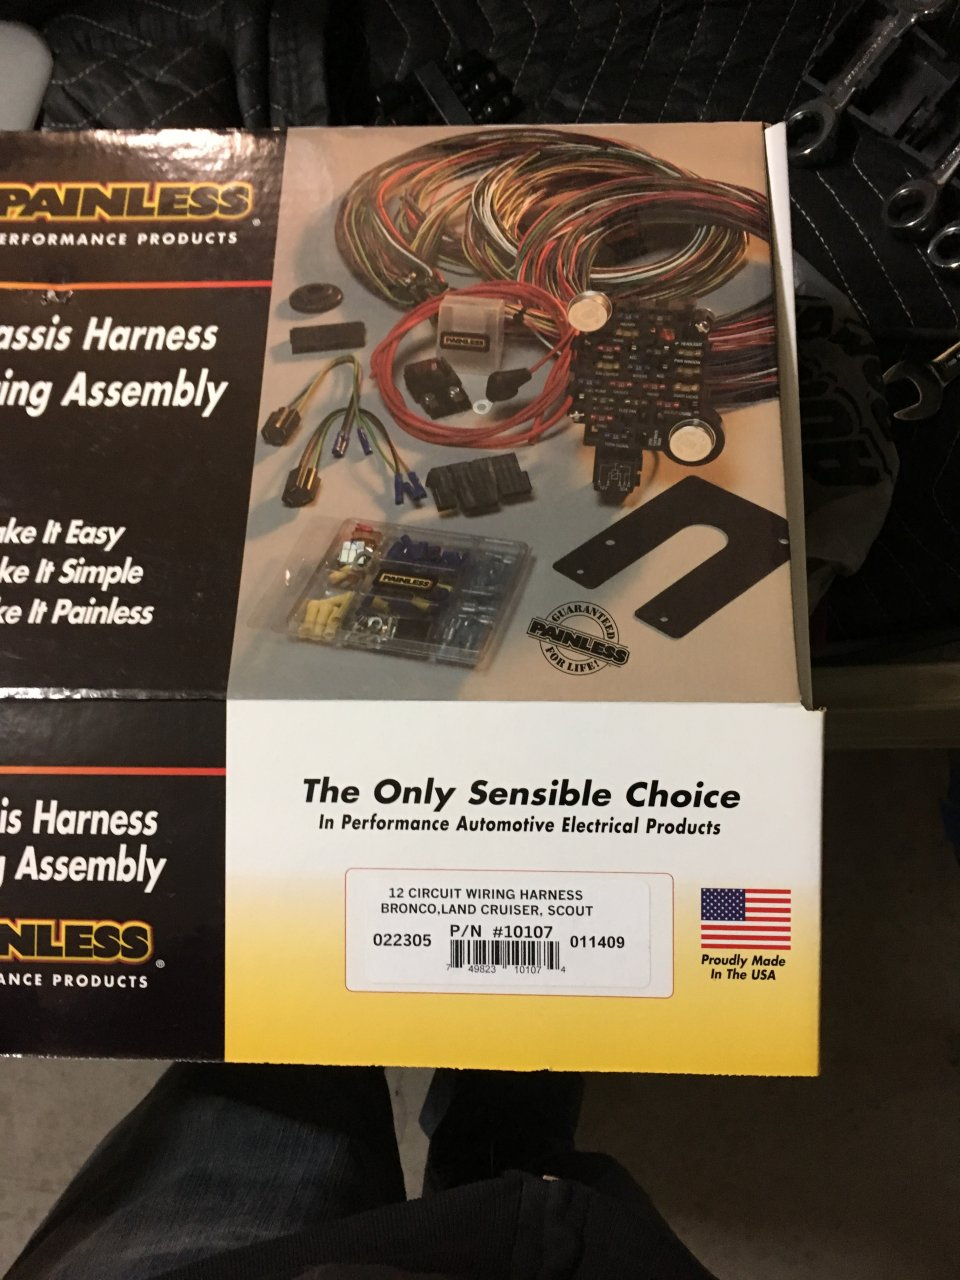 Painless Wiring Harness Toyota Fj40 Library For Sale 10107 New In Box